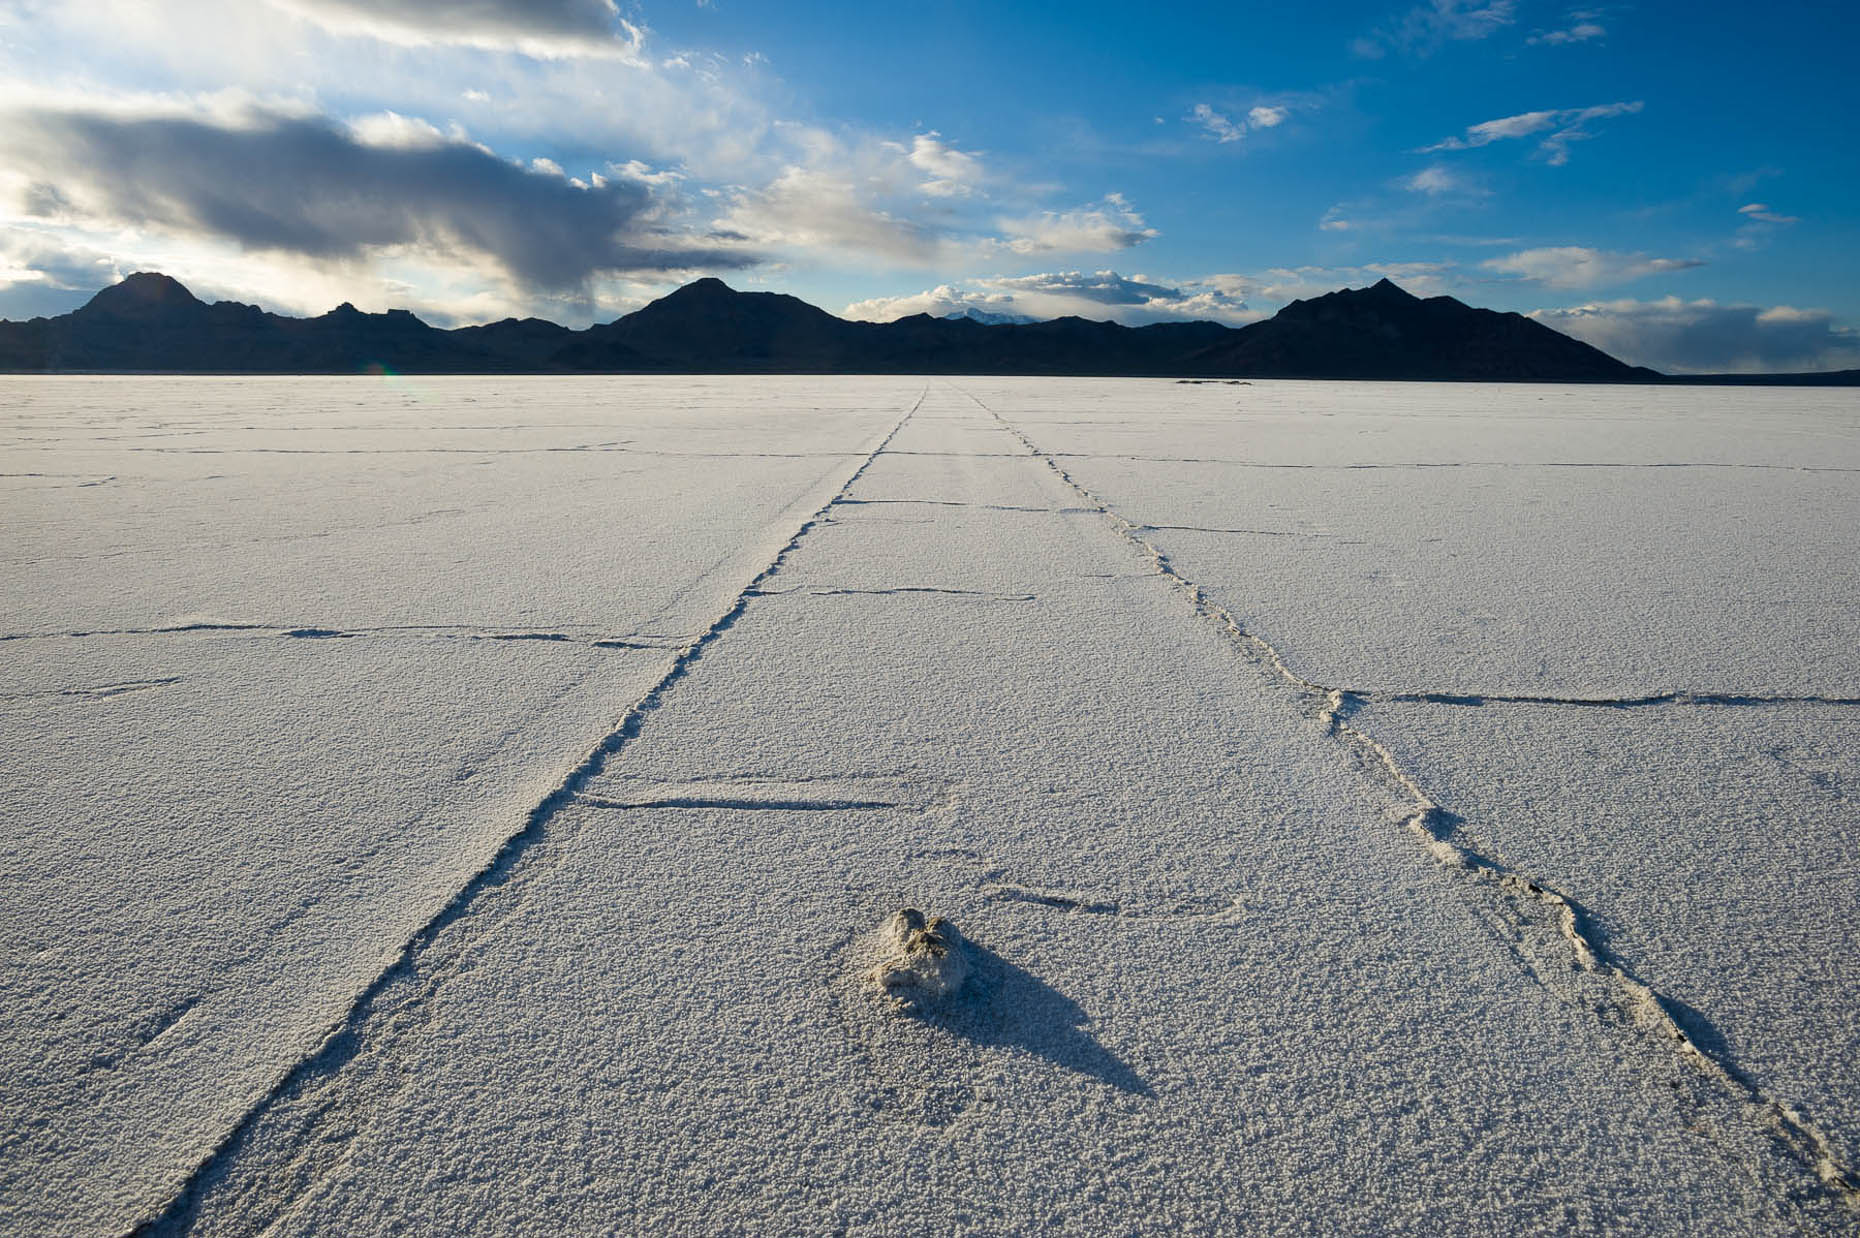 Receding tire track lines in Salt Flats, Utah with blue sky and mountains on horizon.